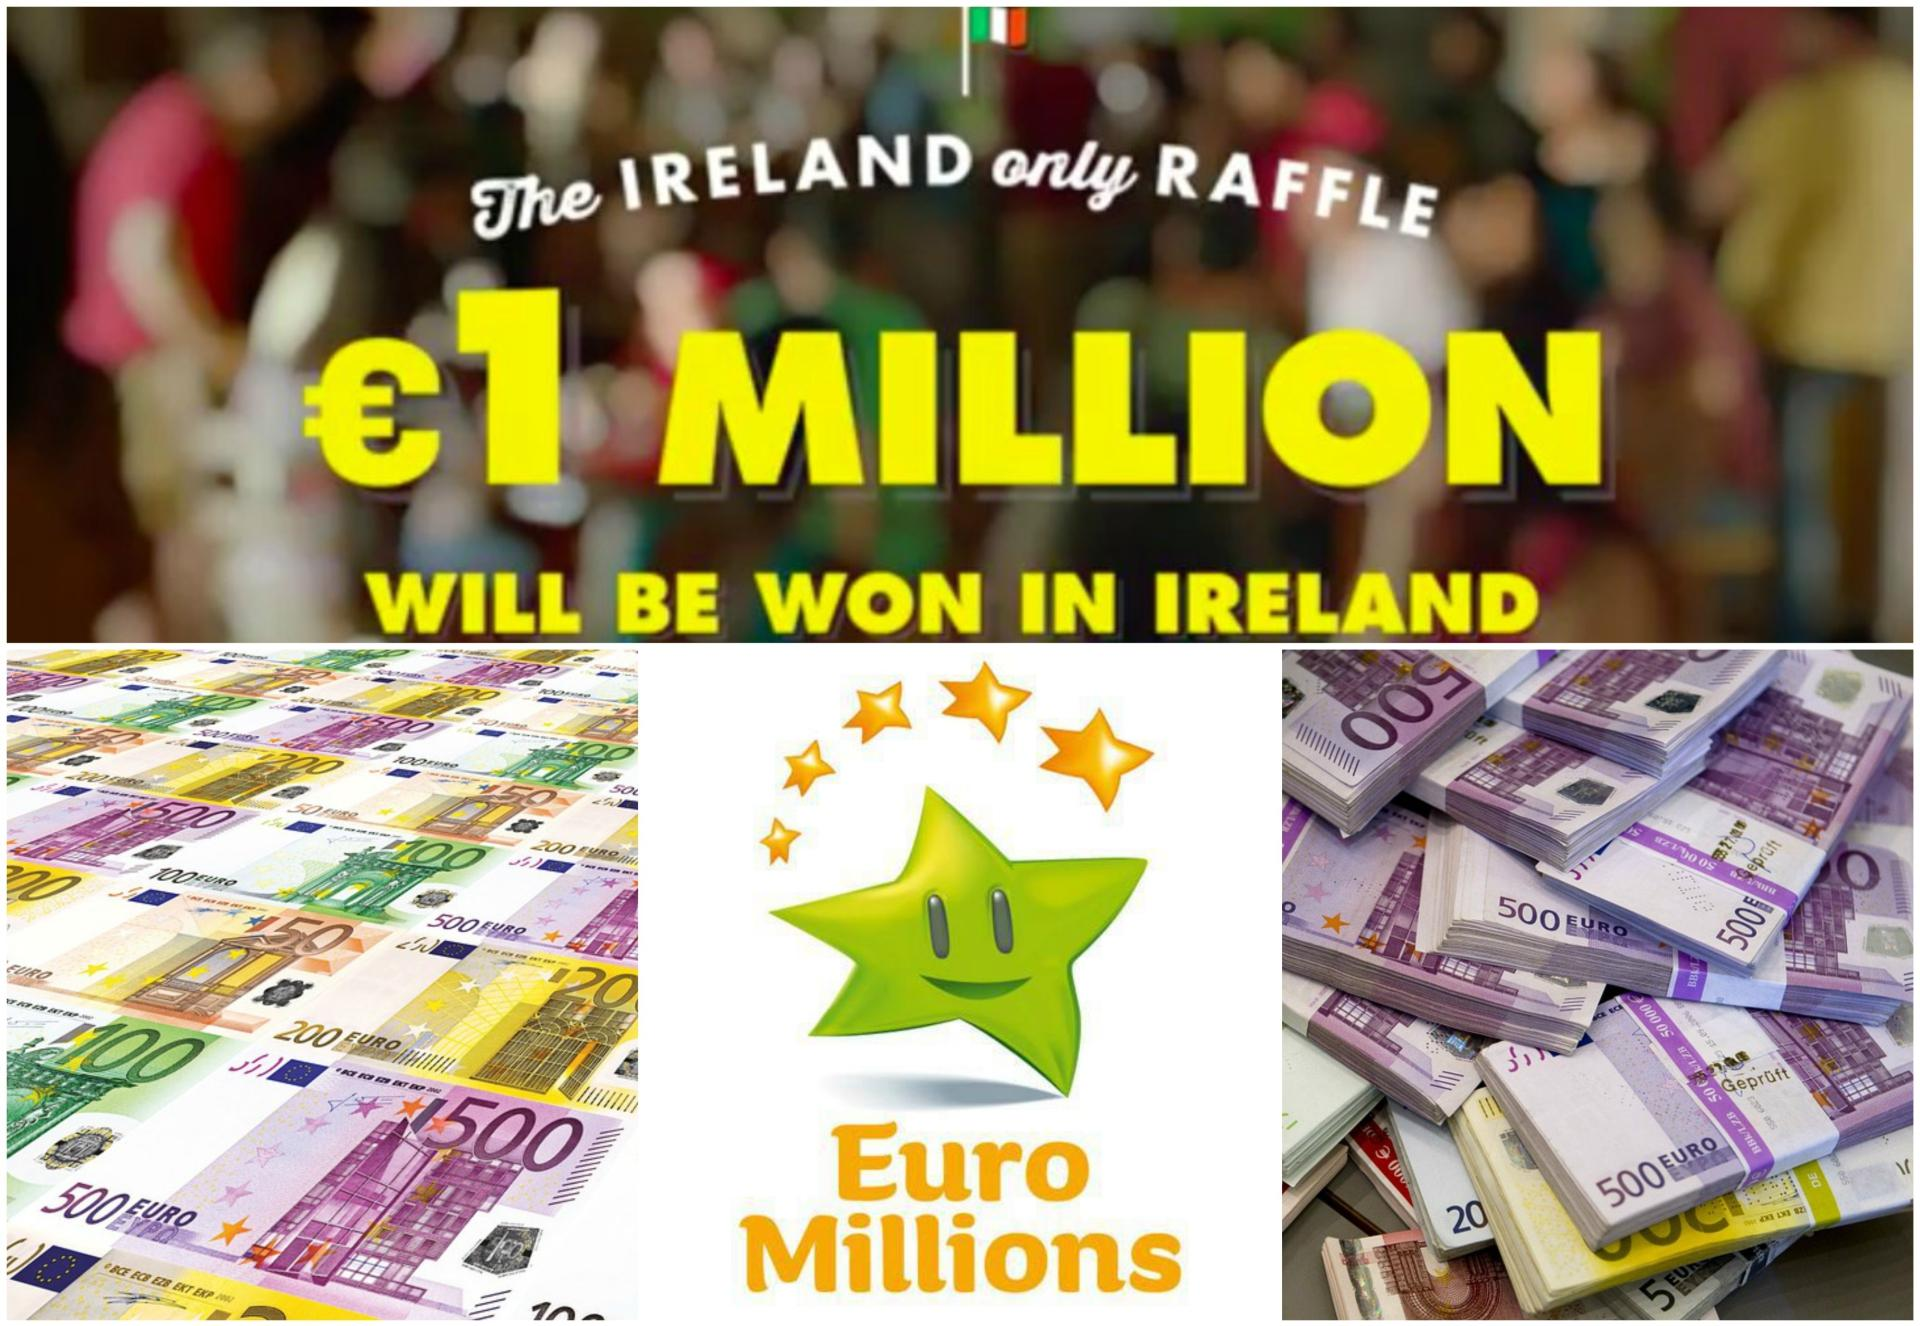 Lotto Euromillions People Of Longford Check Your Euromillions Ticket Lucky Leitrim